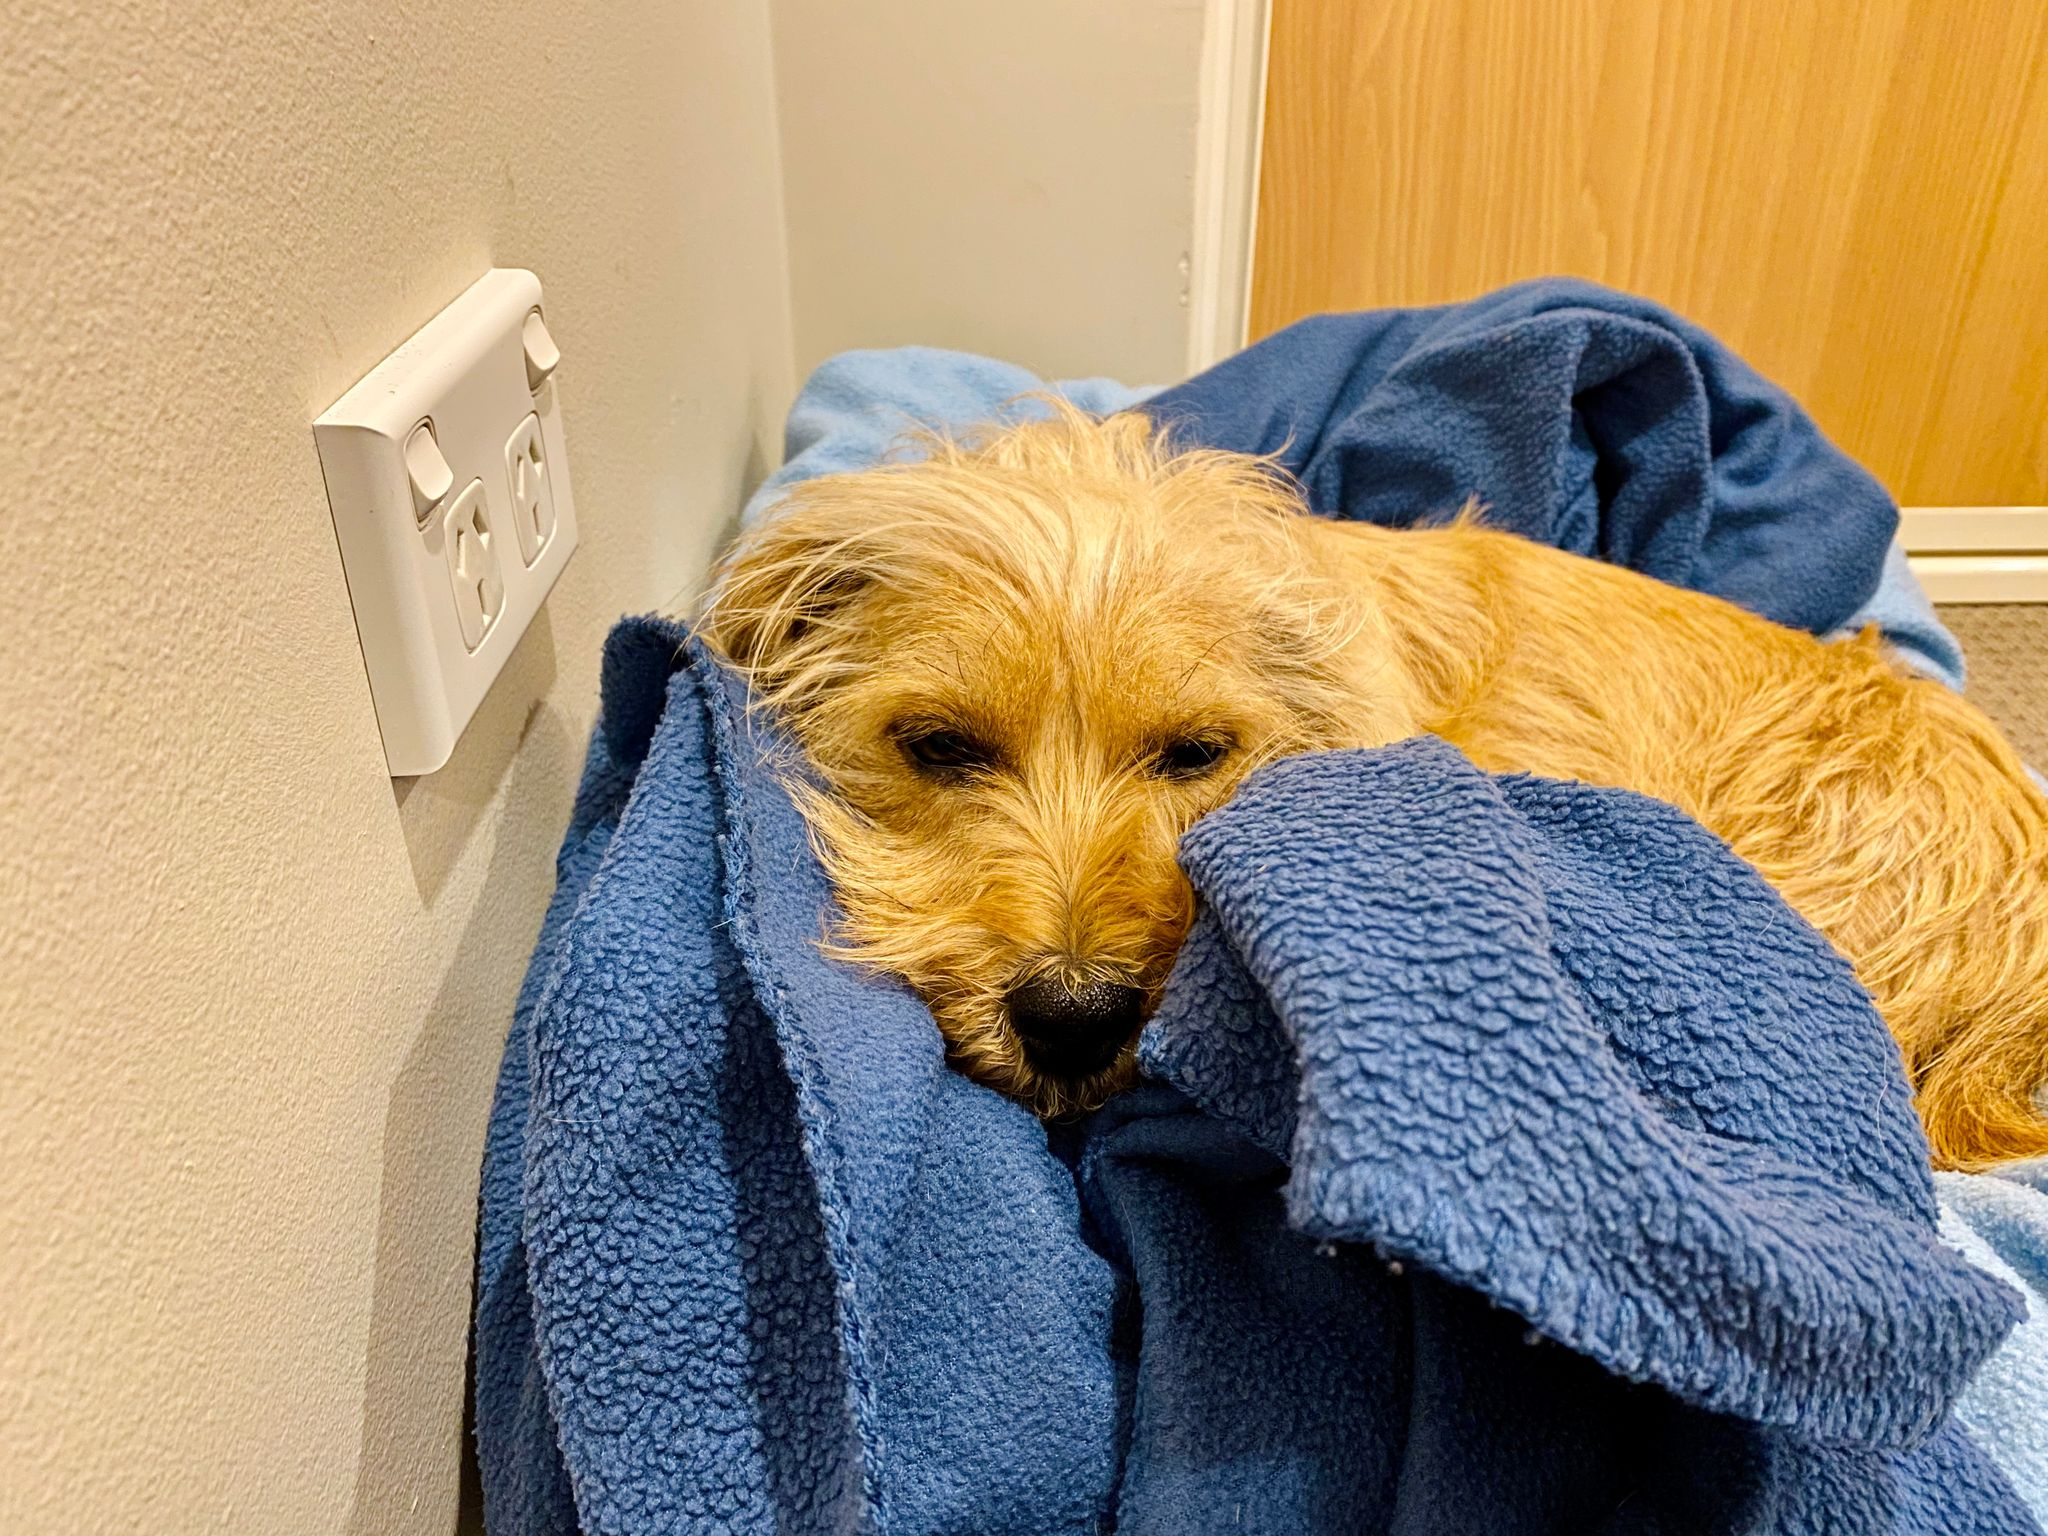 A small scruffy blonde dog lying in a pile of blankets. The hair on one side of his muzzle is sitting up on part of the blanket.